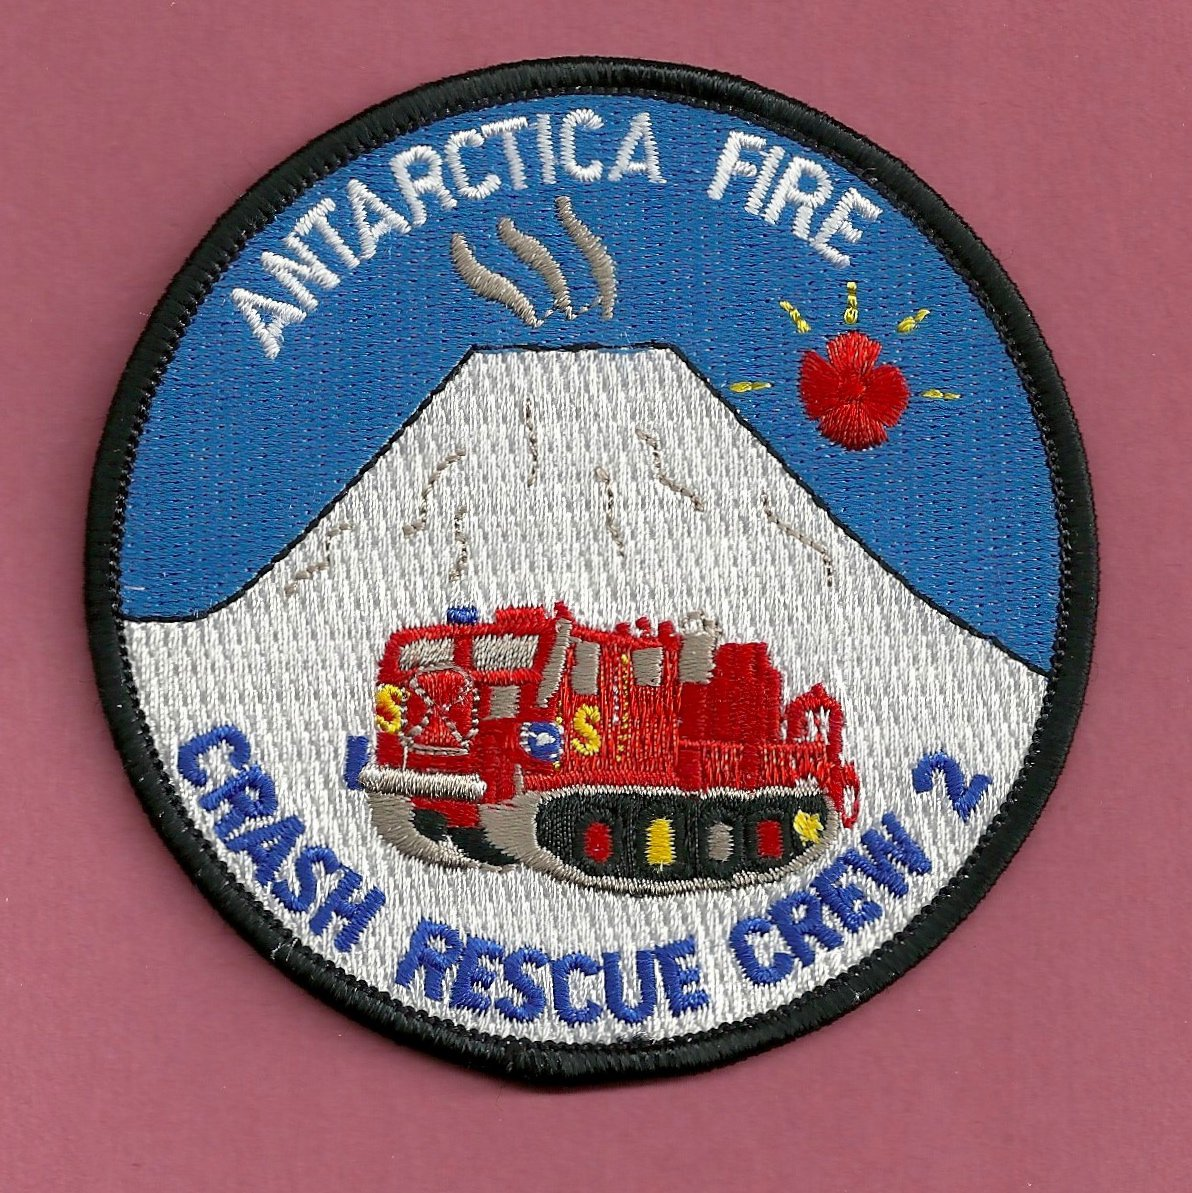 McMurdo Antarctica U.S. Naval Base Fire Rescue Crew 2 Patch